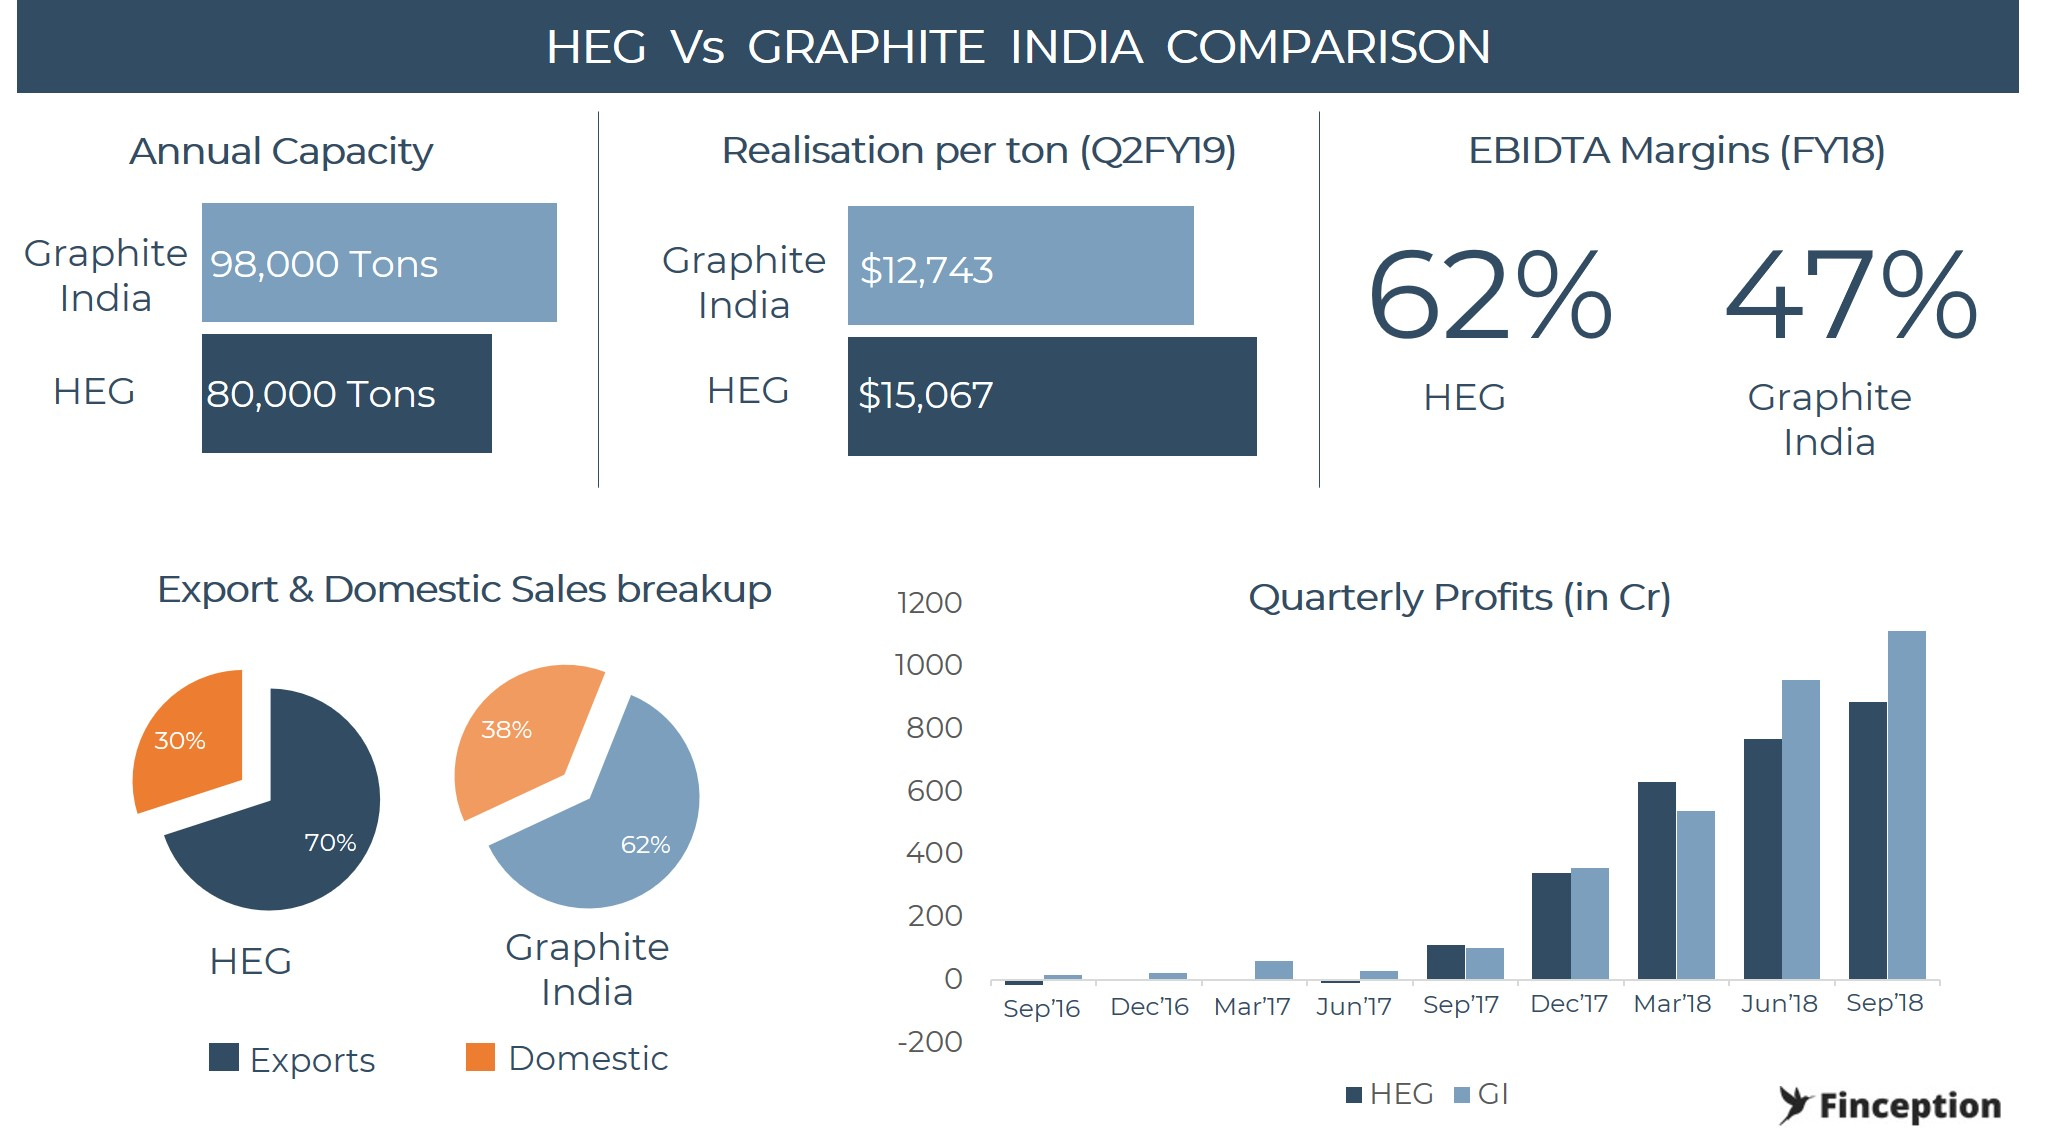 Comparison of HEG and Graphite India